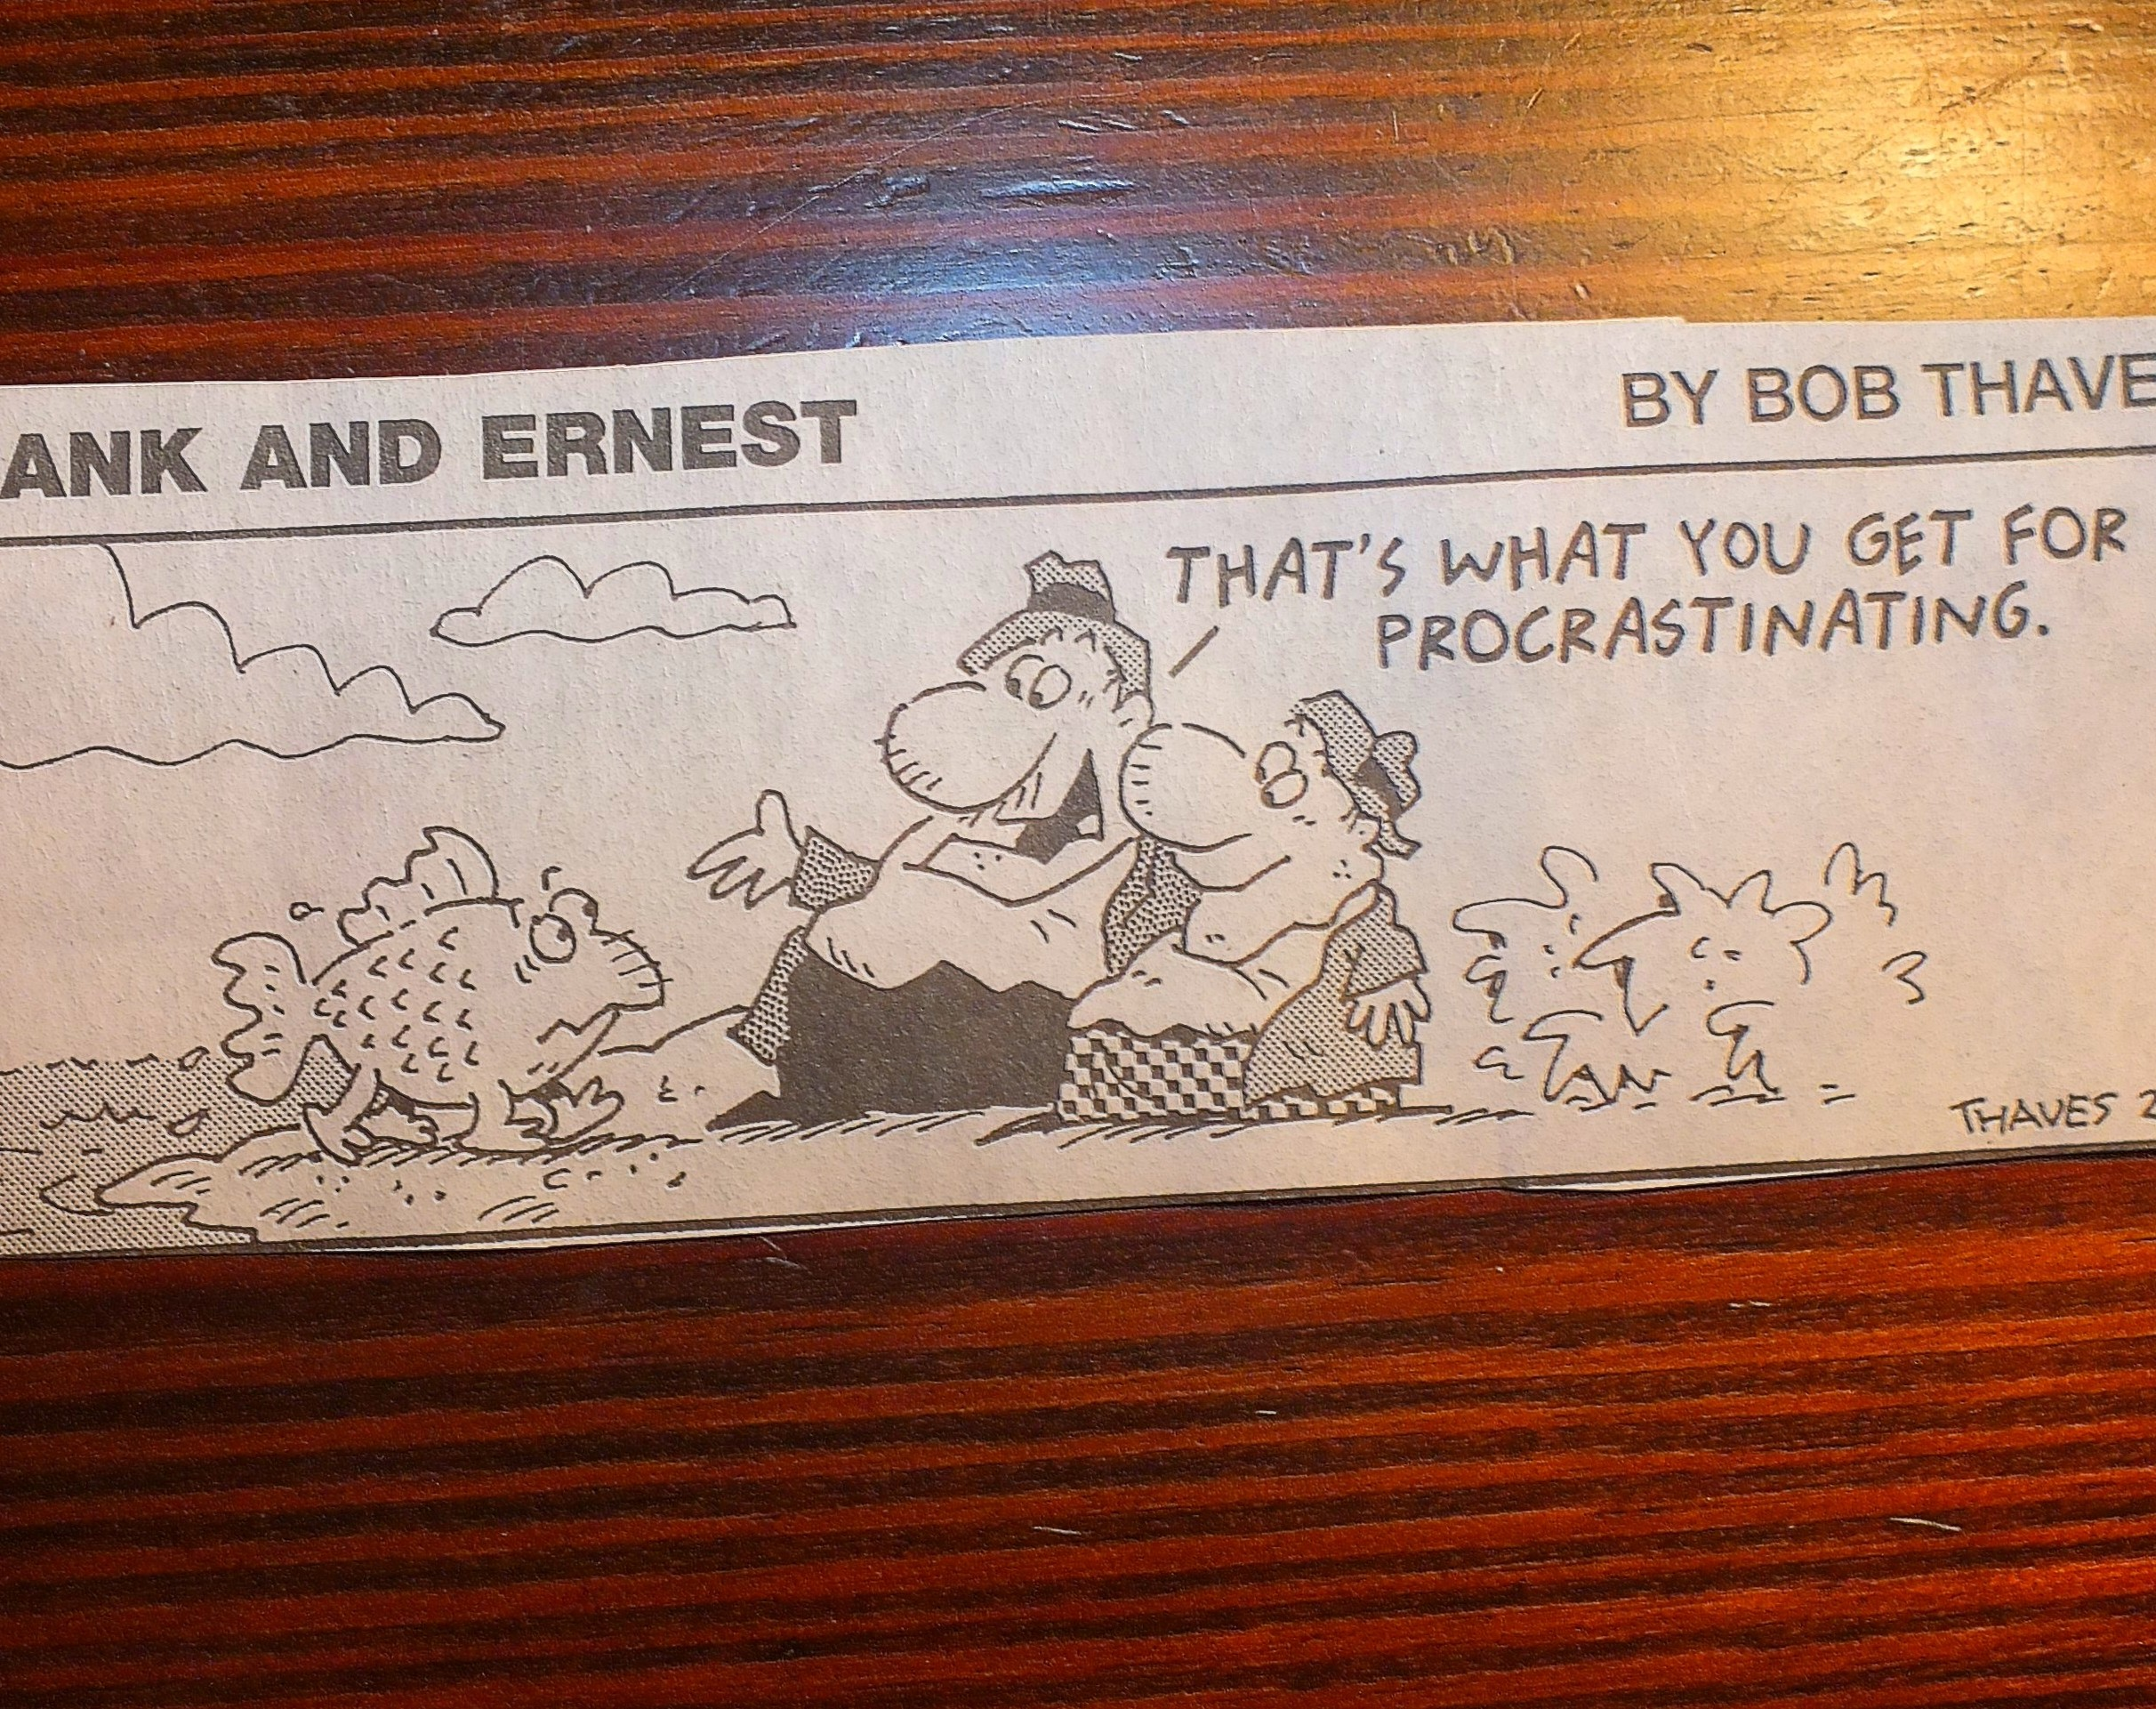 Comic by Bob Thaves. Photo by Thomas Peace 2015